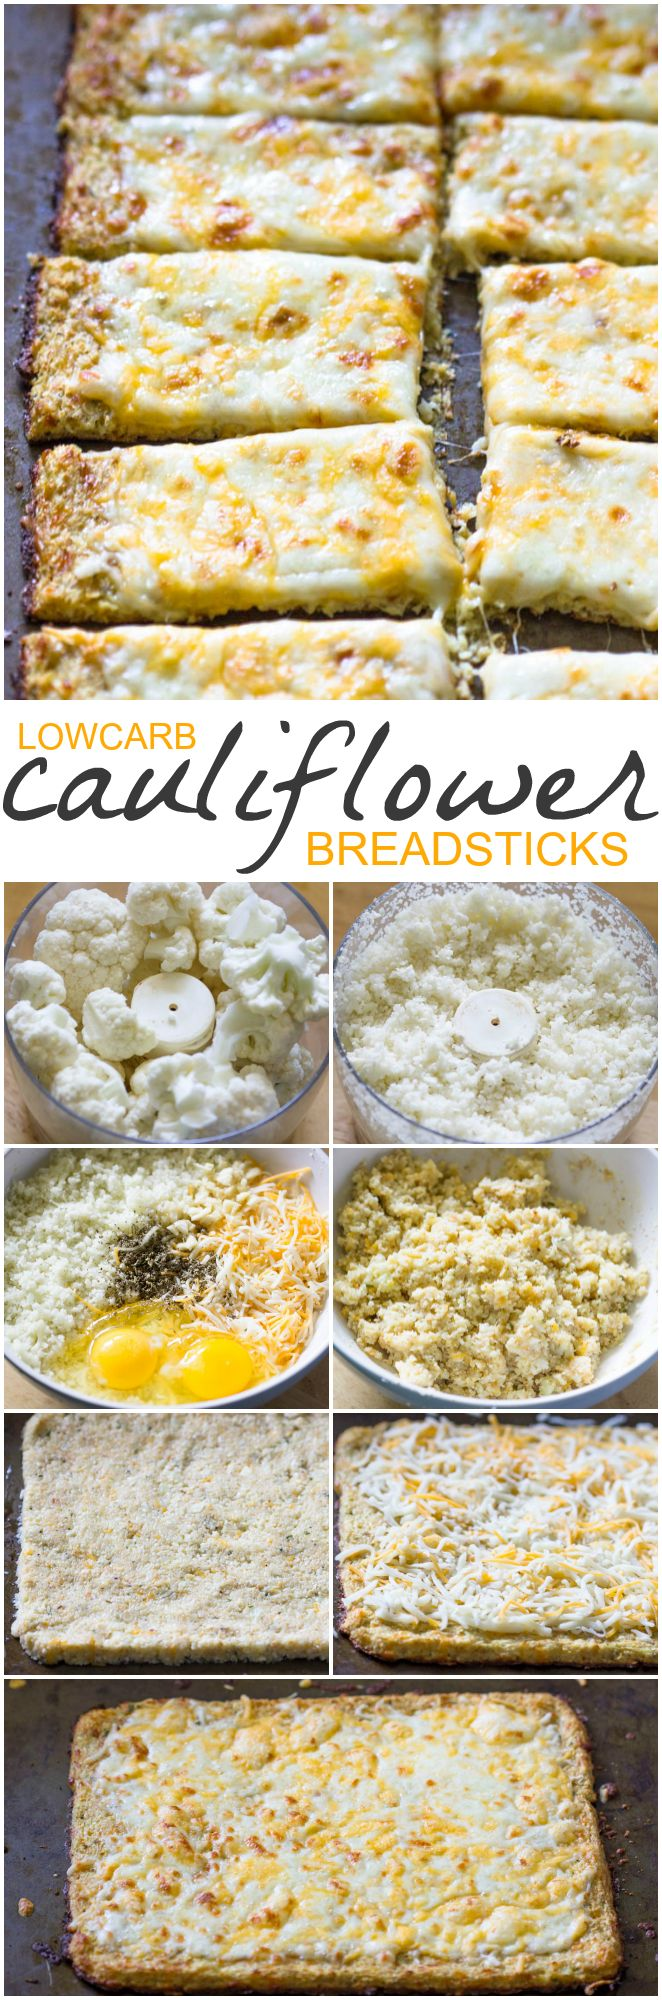 Low-Carb Cauliflower Crust Bread Sticks taste 1000x better than your usual bread-sticks!  | Gimme Delicious